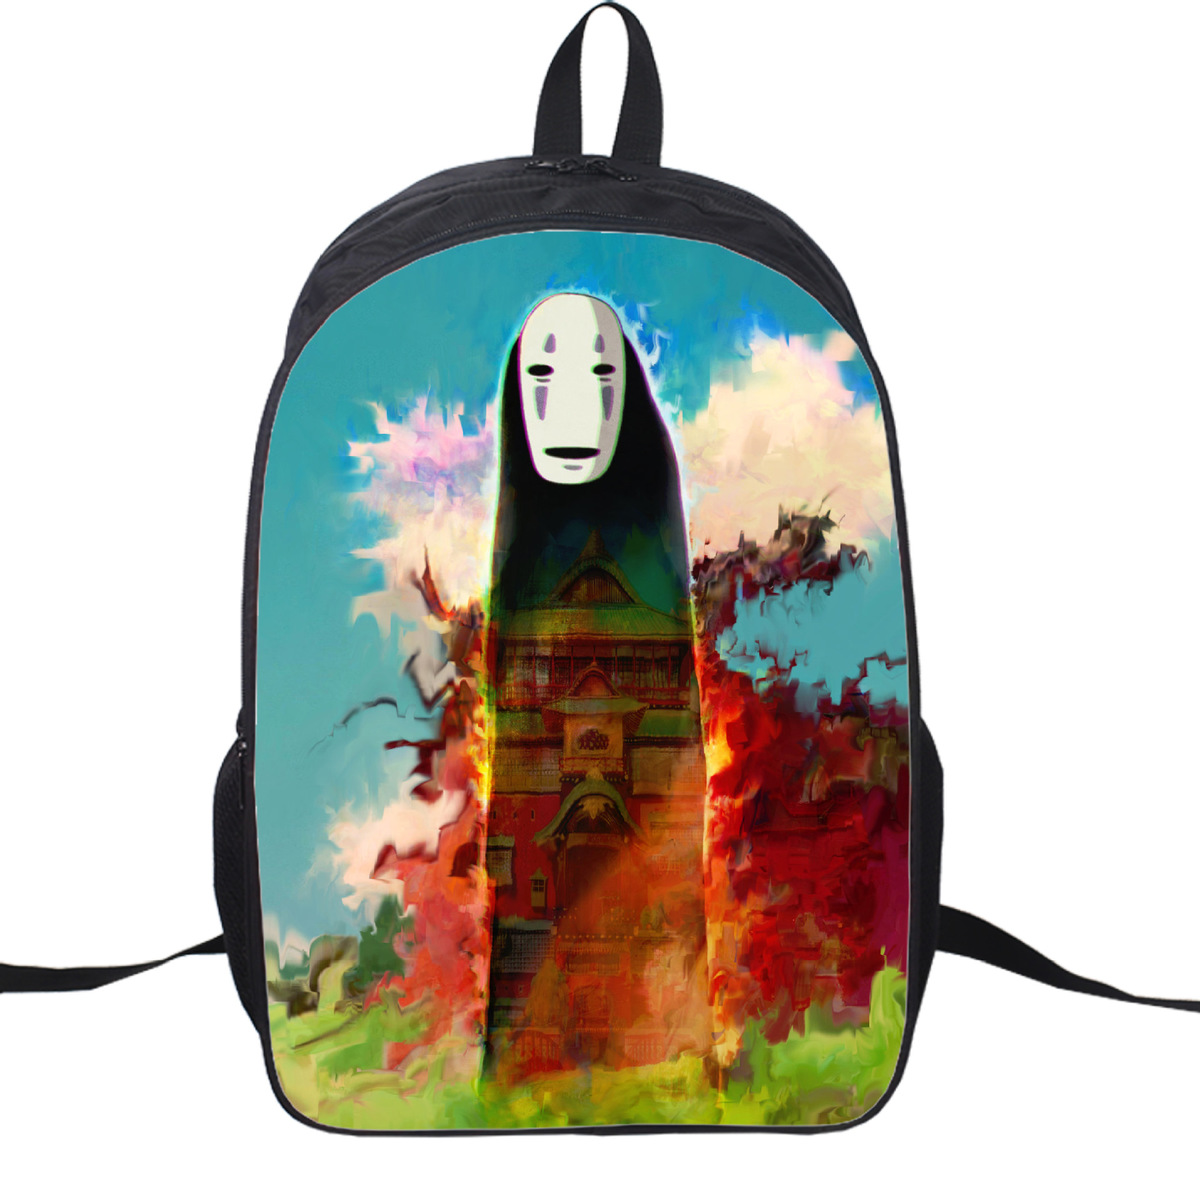 Japan Anime Miyazaki Totoro Spirited Away No Face Zipper Cute Canvas Cartoon Adult Double Belt Backpack School Bag 8 style a spirited resistance